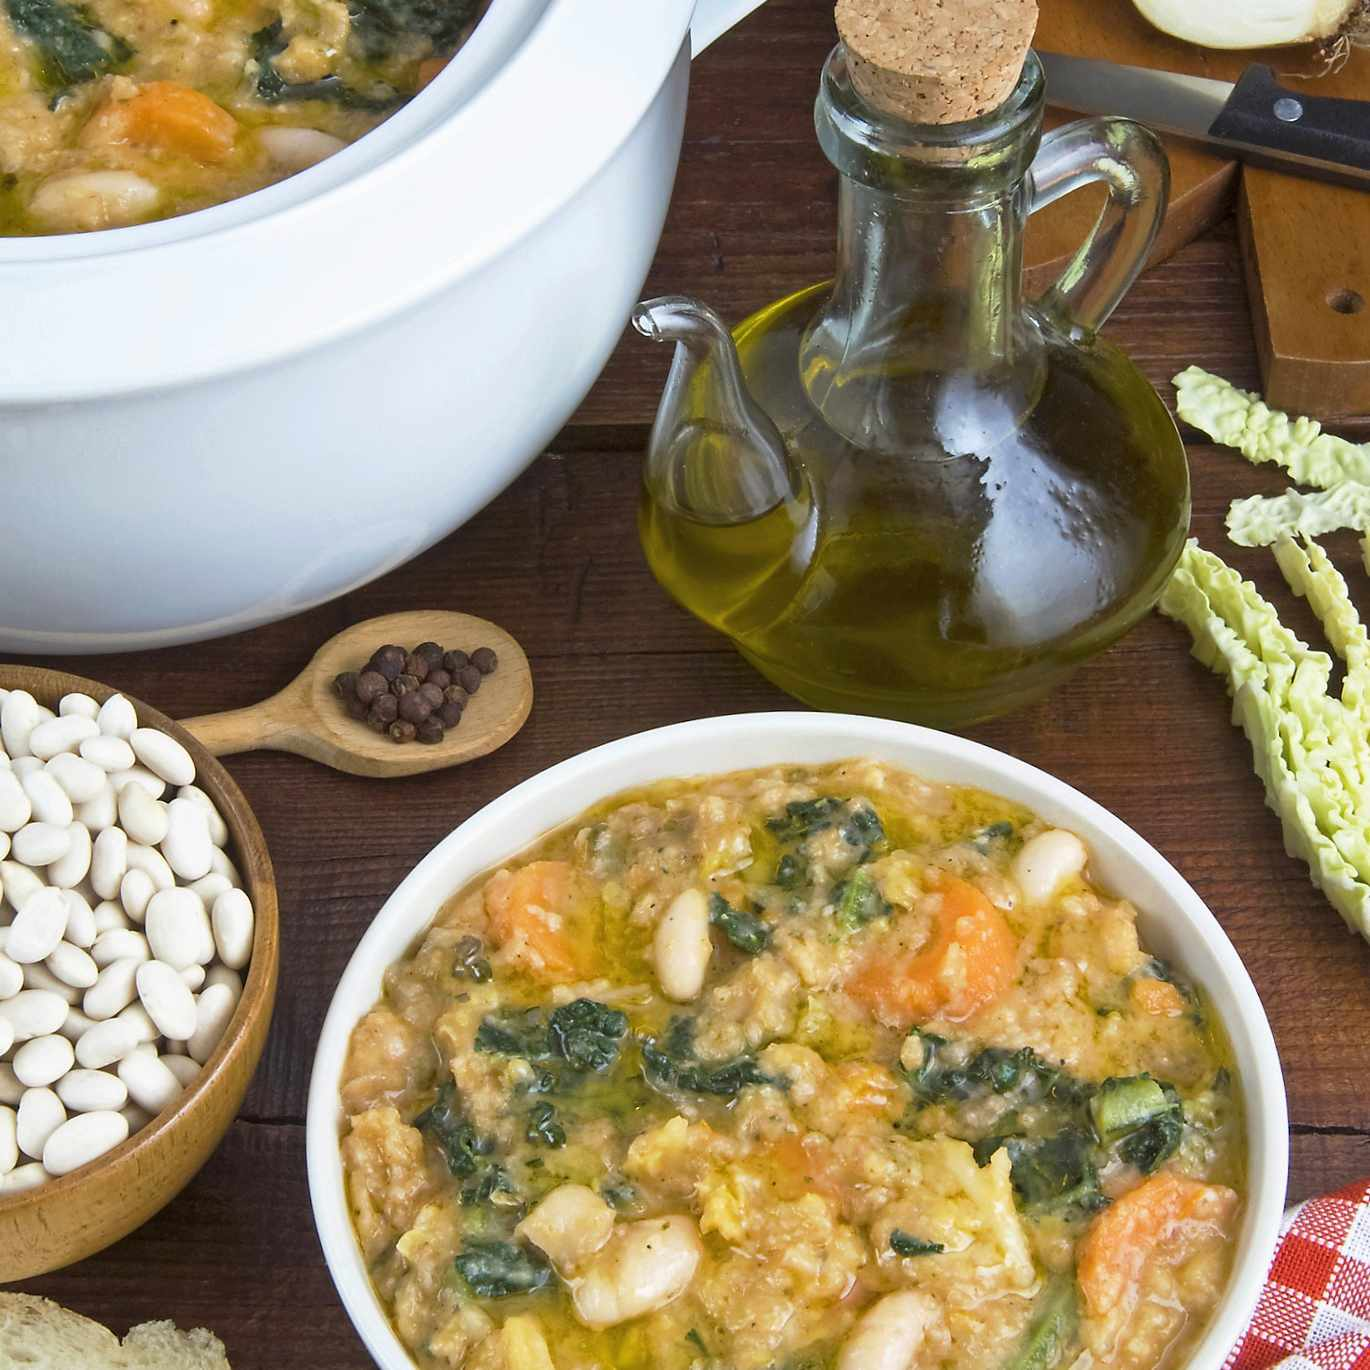 Tuscan Ribollita soup (Florentine soup) made with lacinato kale, cannellini beans, Tuscan bread, and olive oil